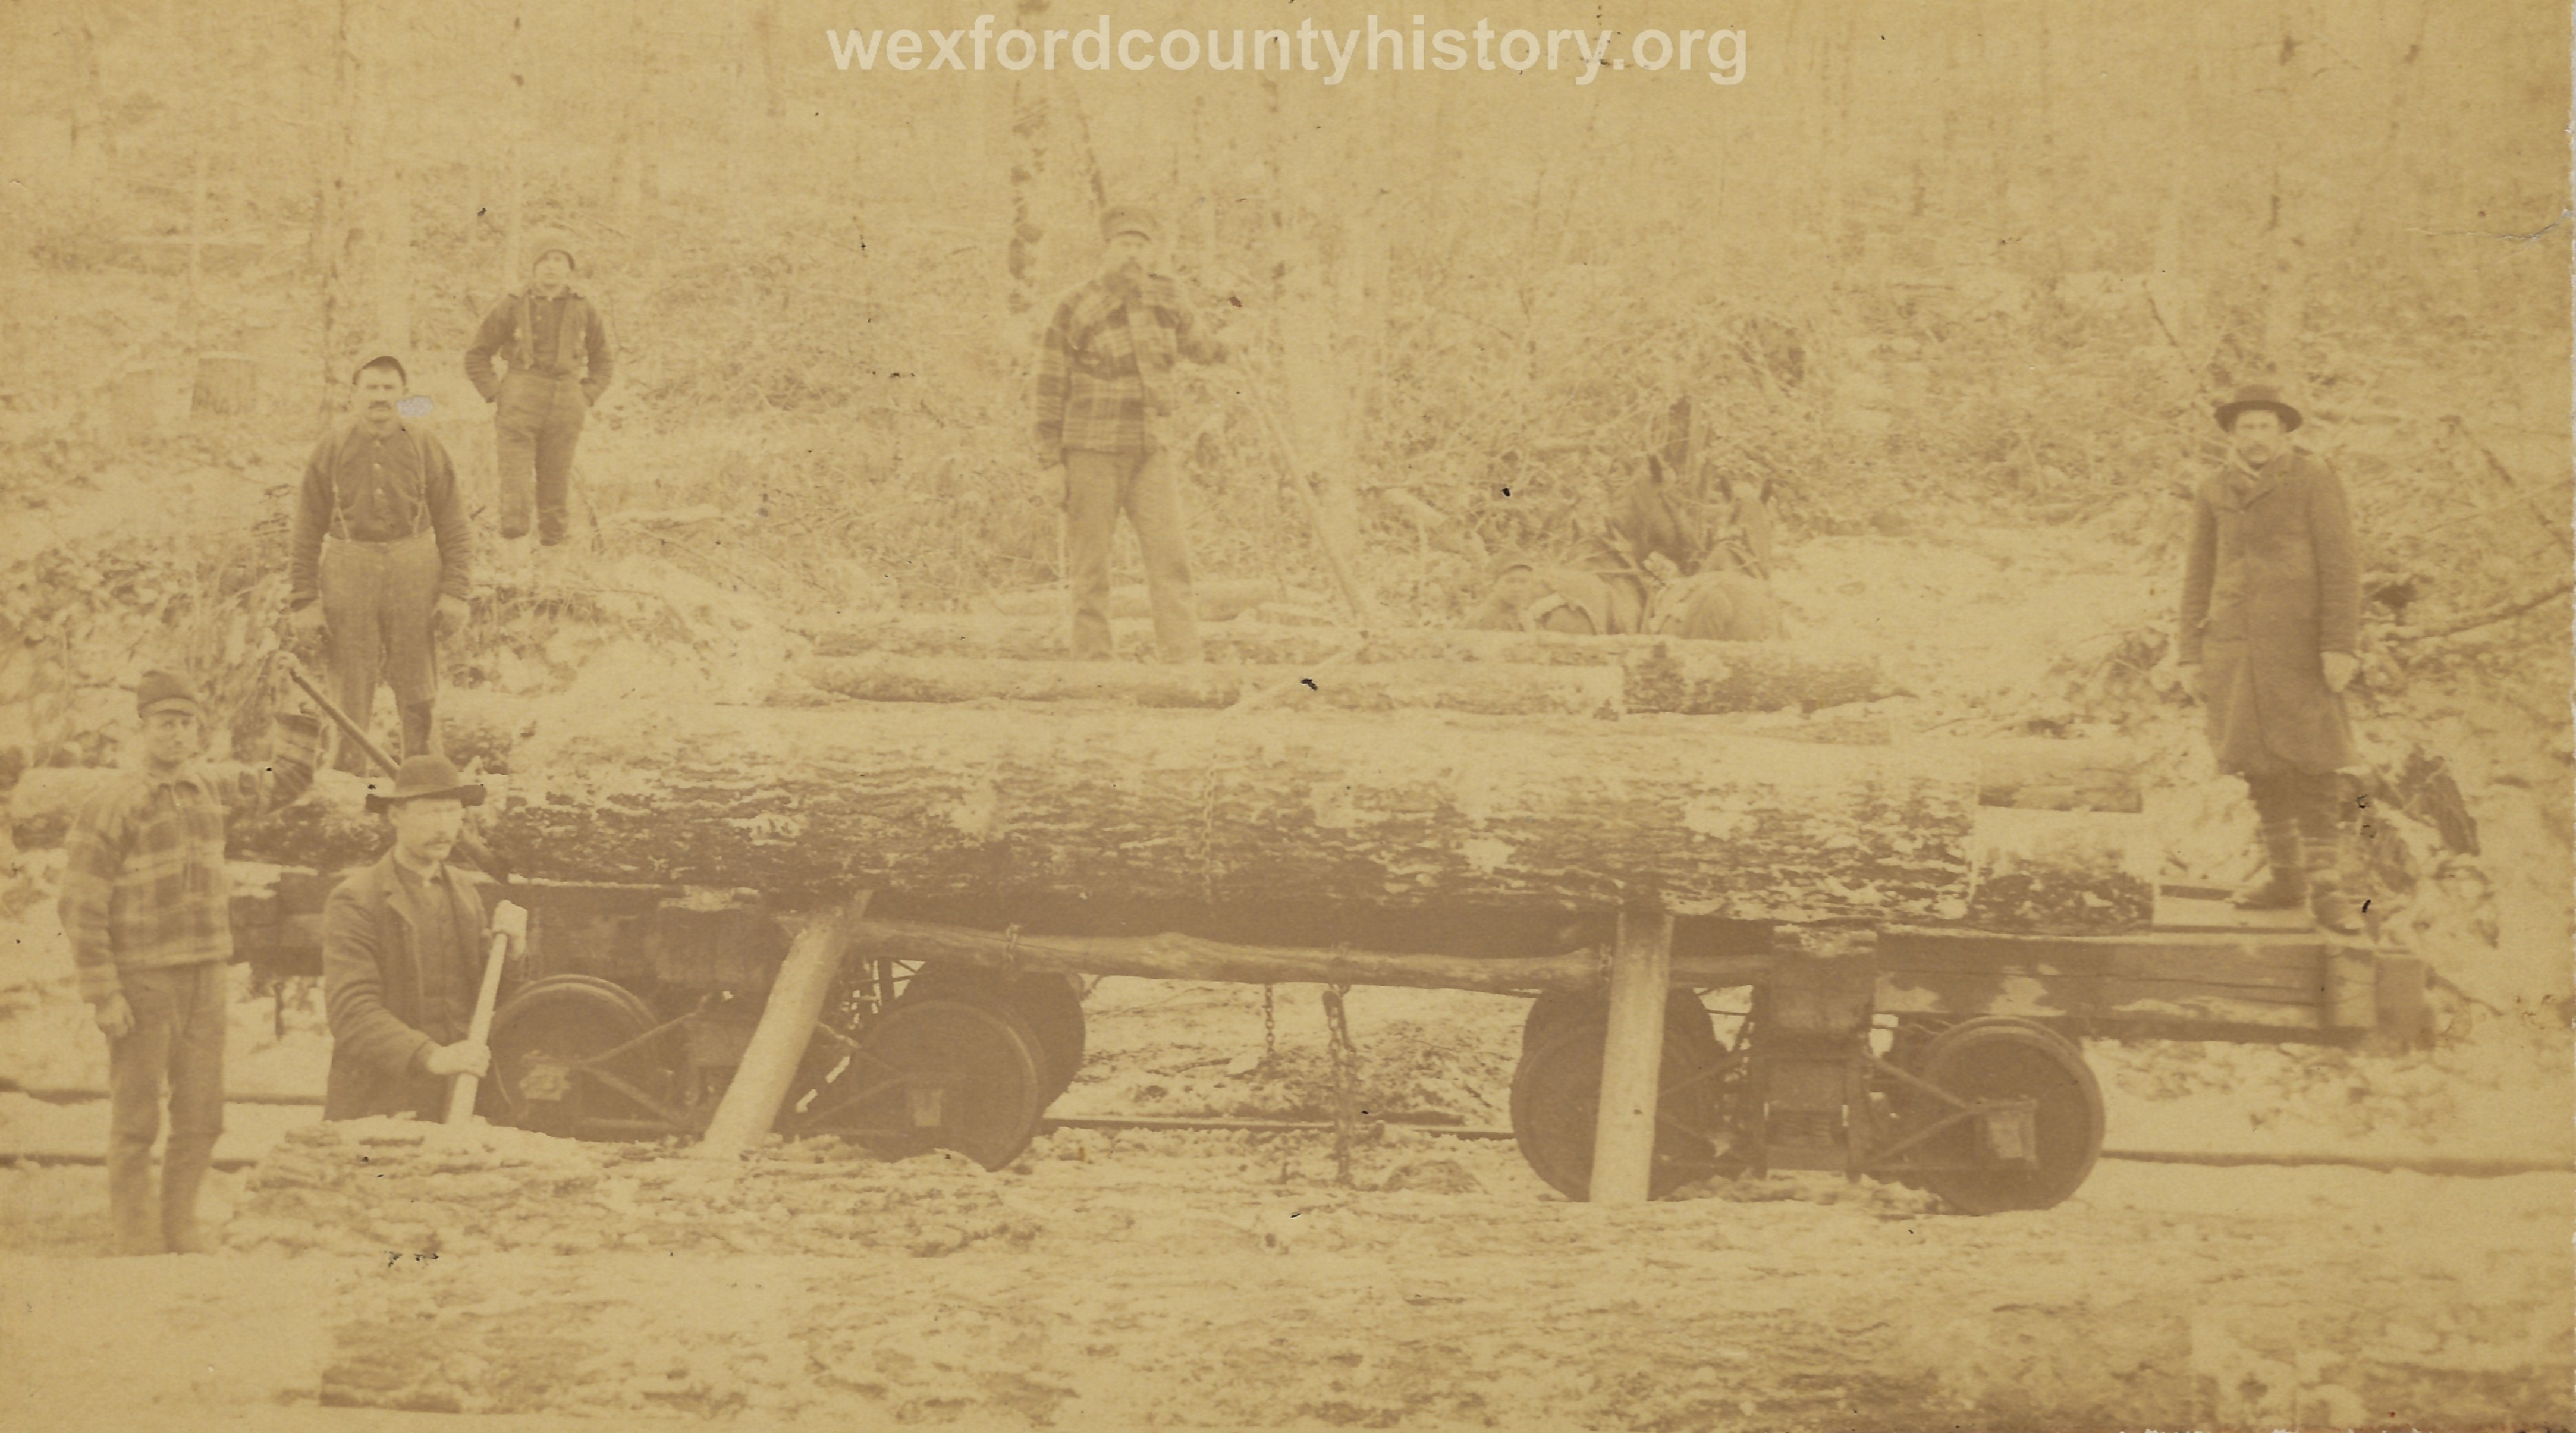 Cadillac-Lumber-Lumberjacks-loading-logs-into-railroad-car-with-a-light-snow-on-the-logs